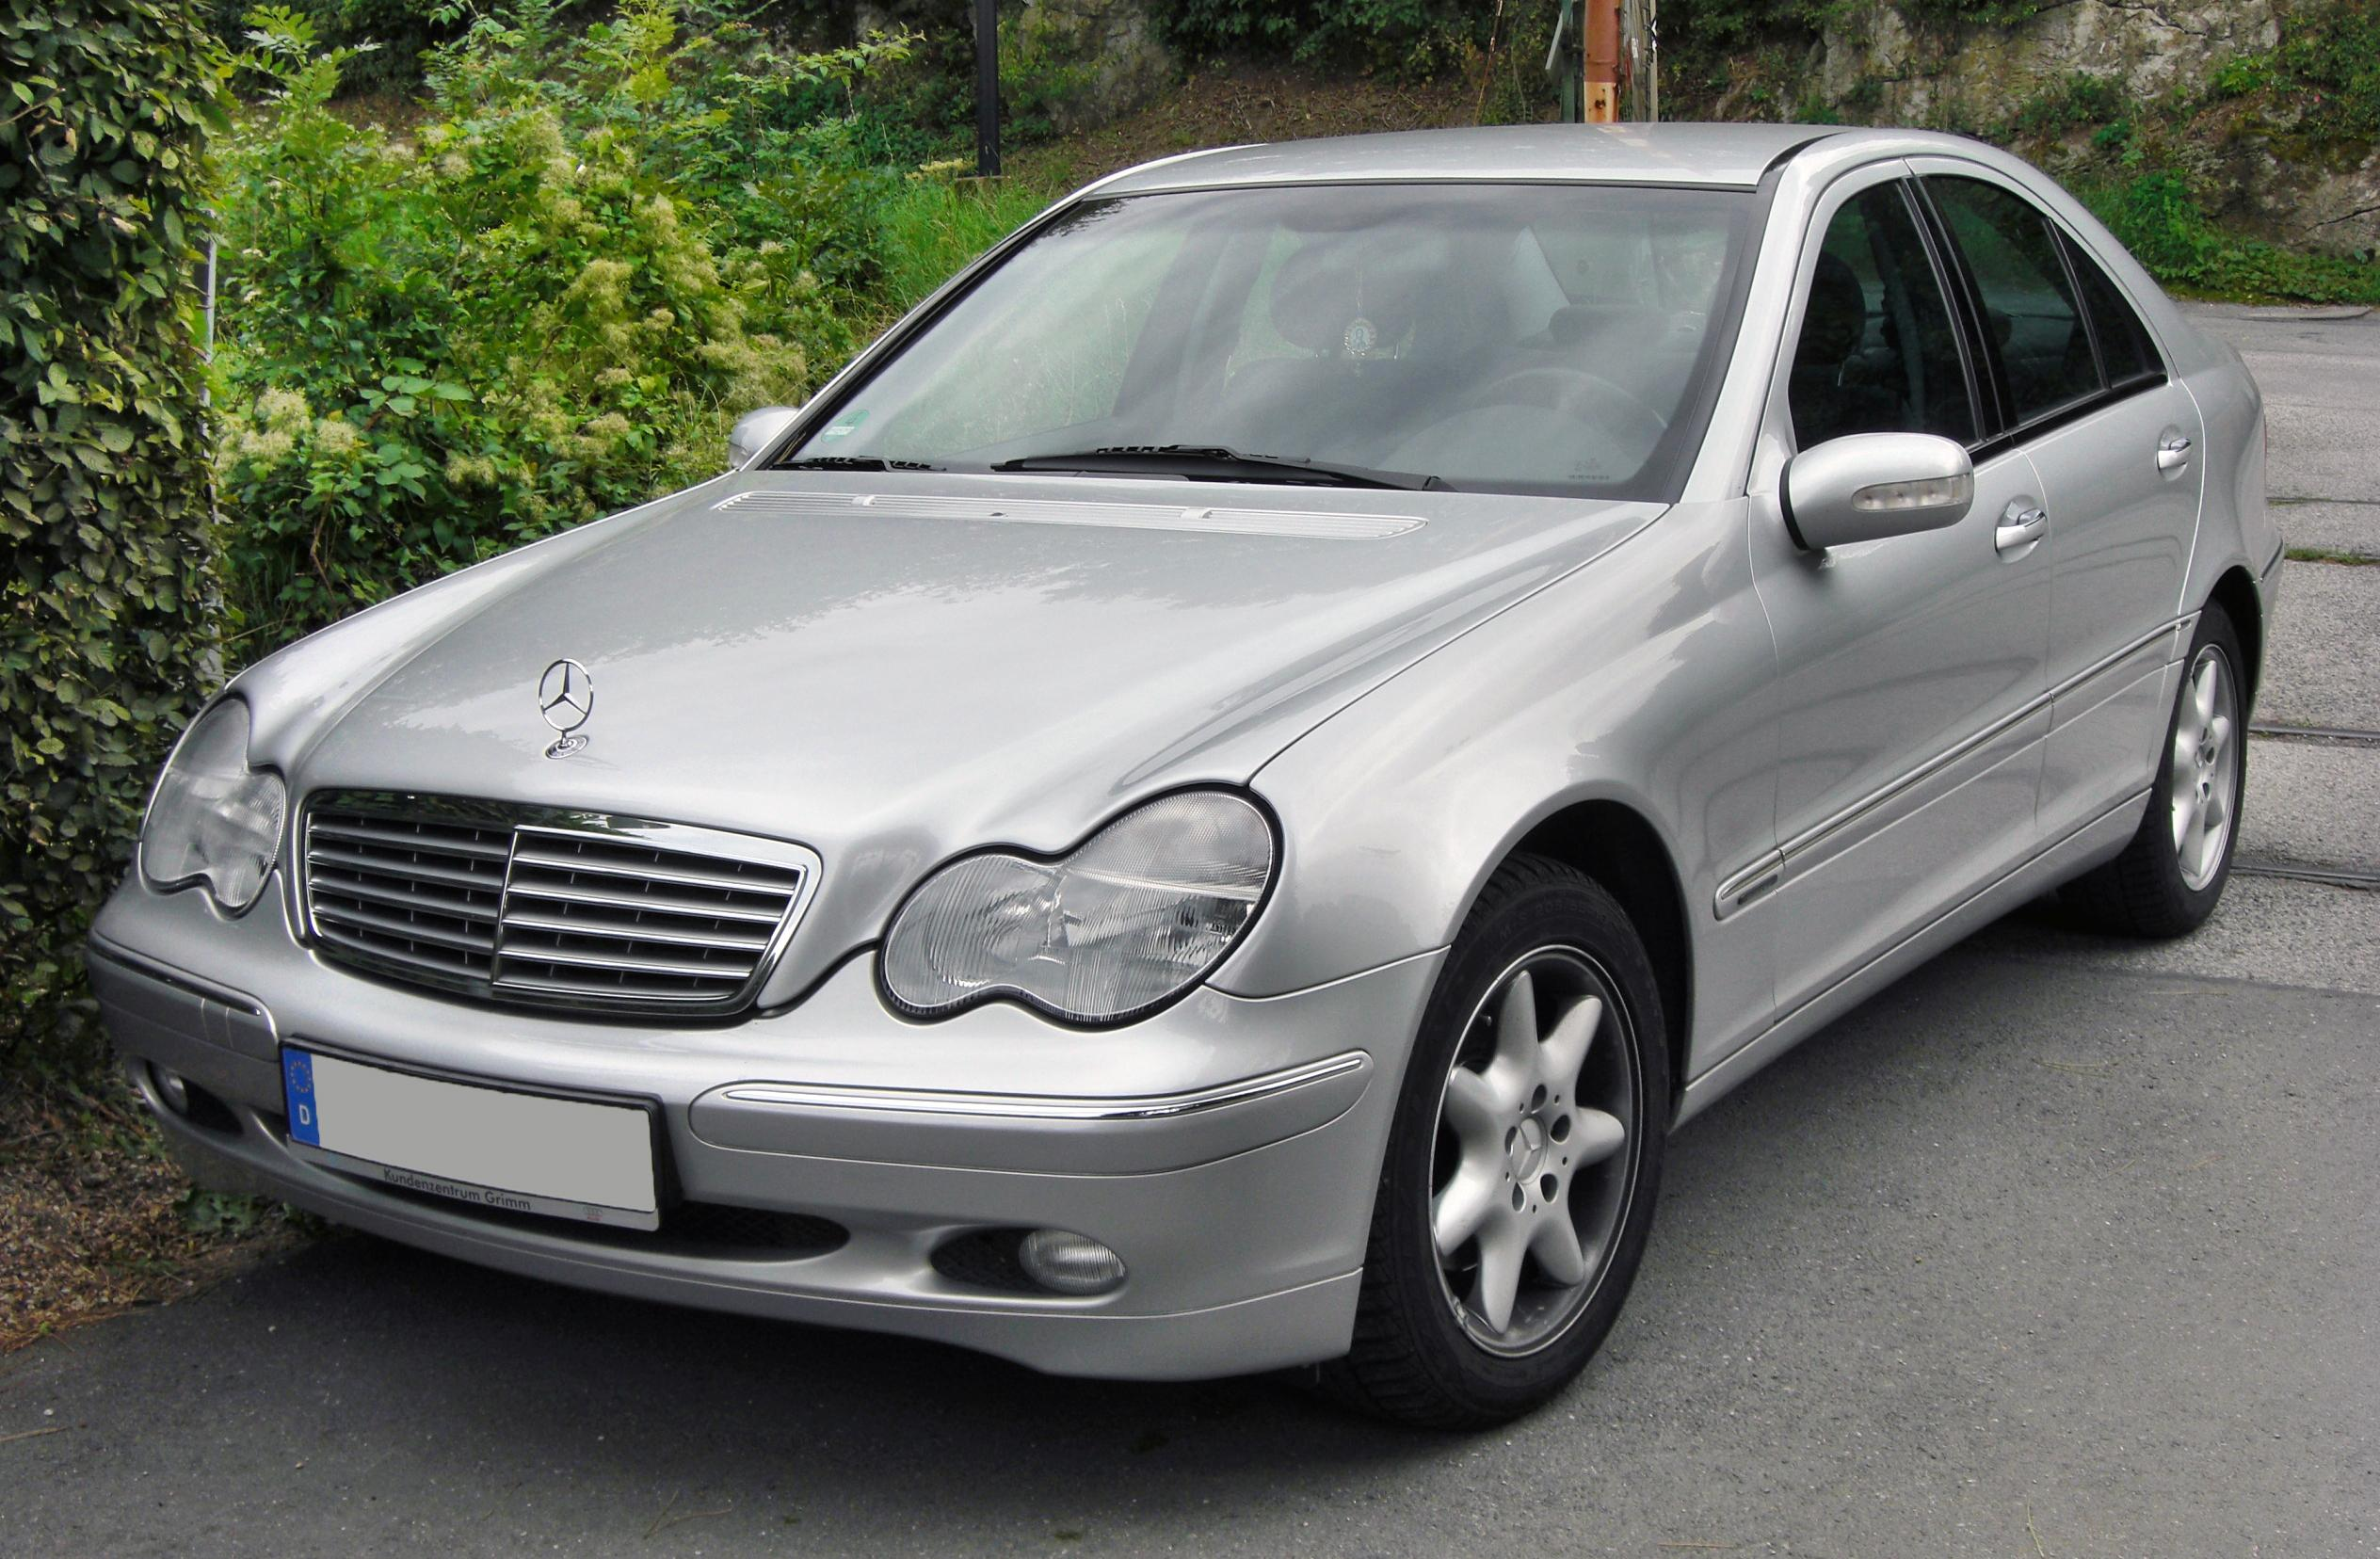 datei mercedes c klasse w203 elegance 20090830 front jpg wikipedia. Black Bedroom Furniture Sets. Home Design Ideas